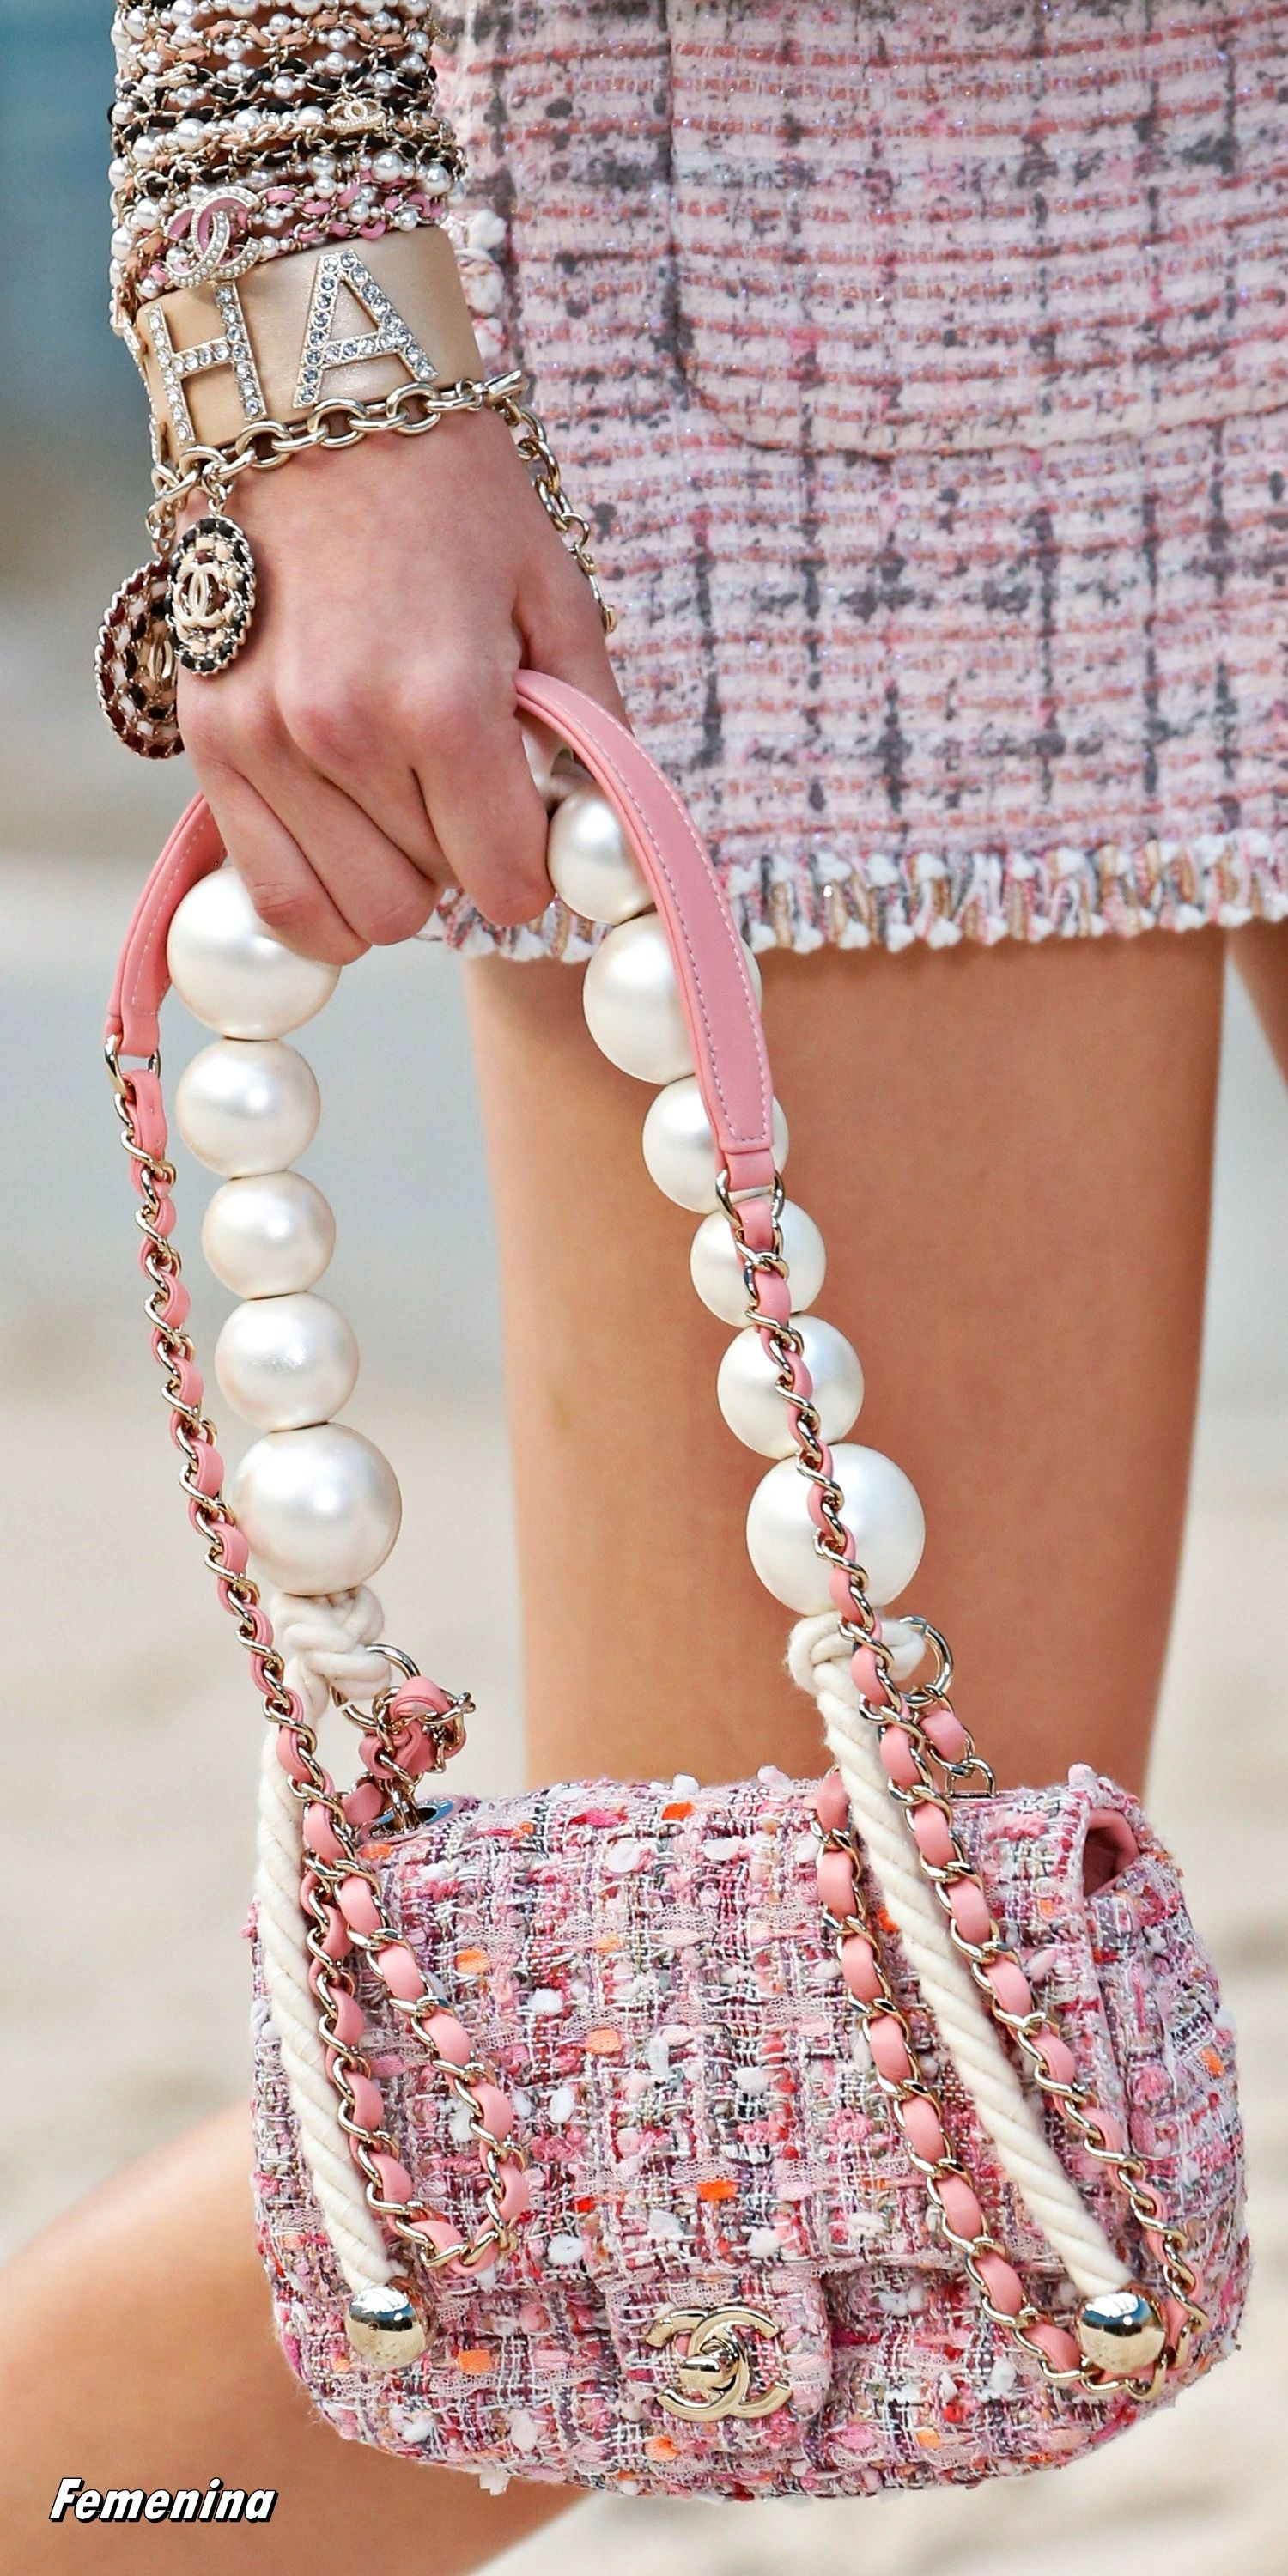 827605afe3 Chanel Spring/Summer 2019 RTW -Details#bag#accessories | My Chanel ...